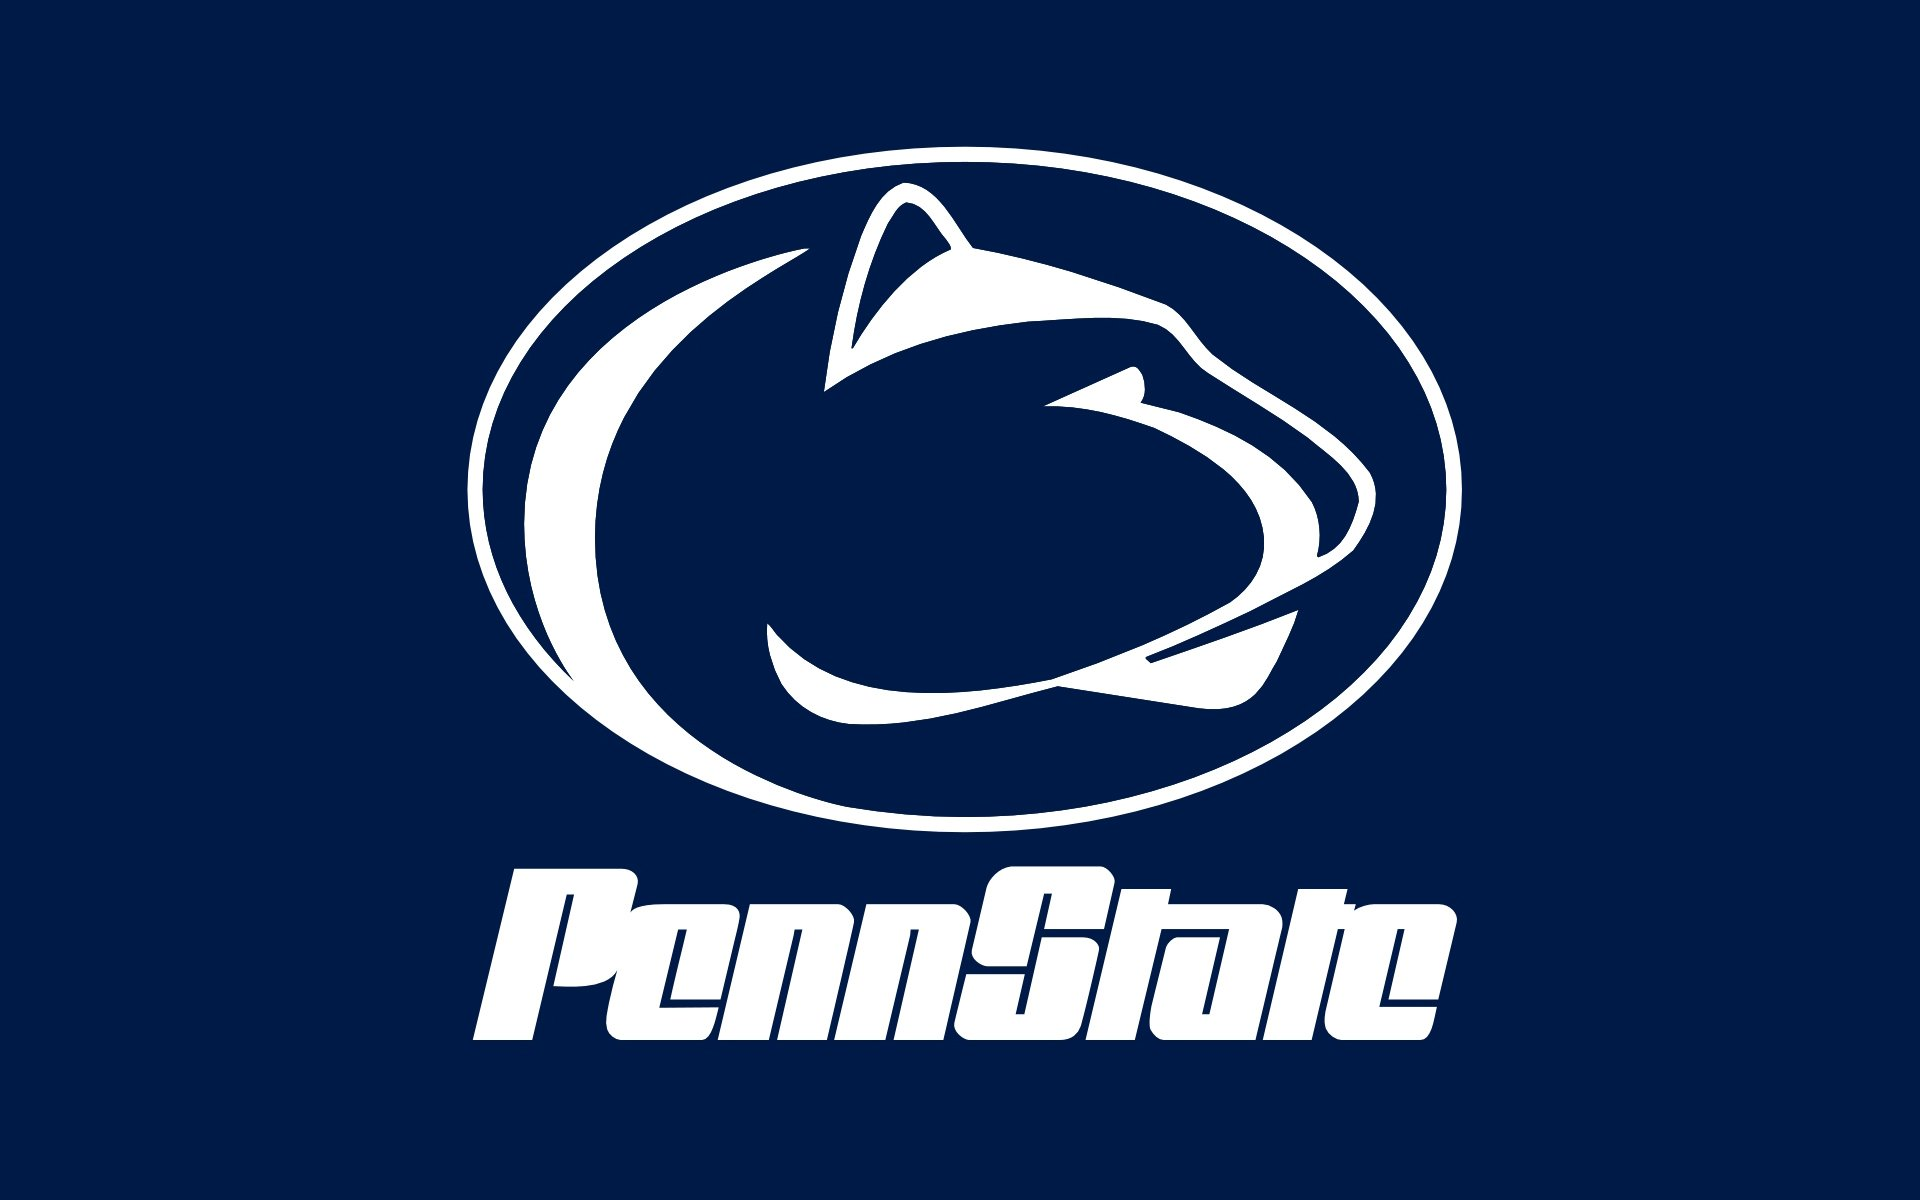 Penn State Football Desktop Wallpaper